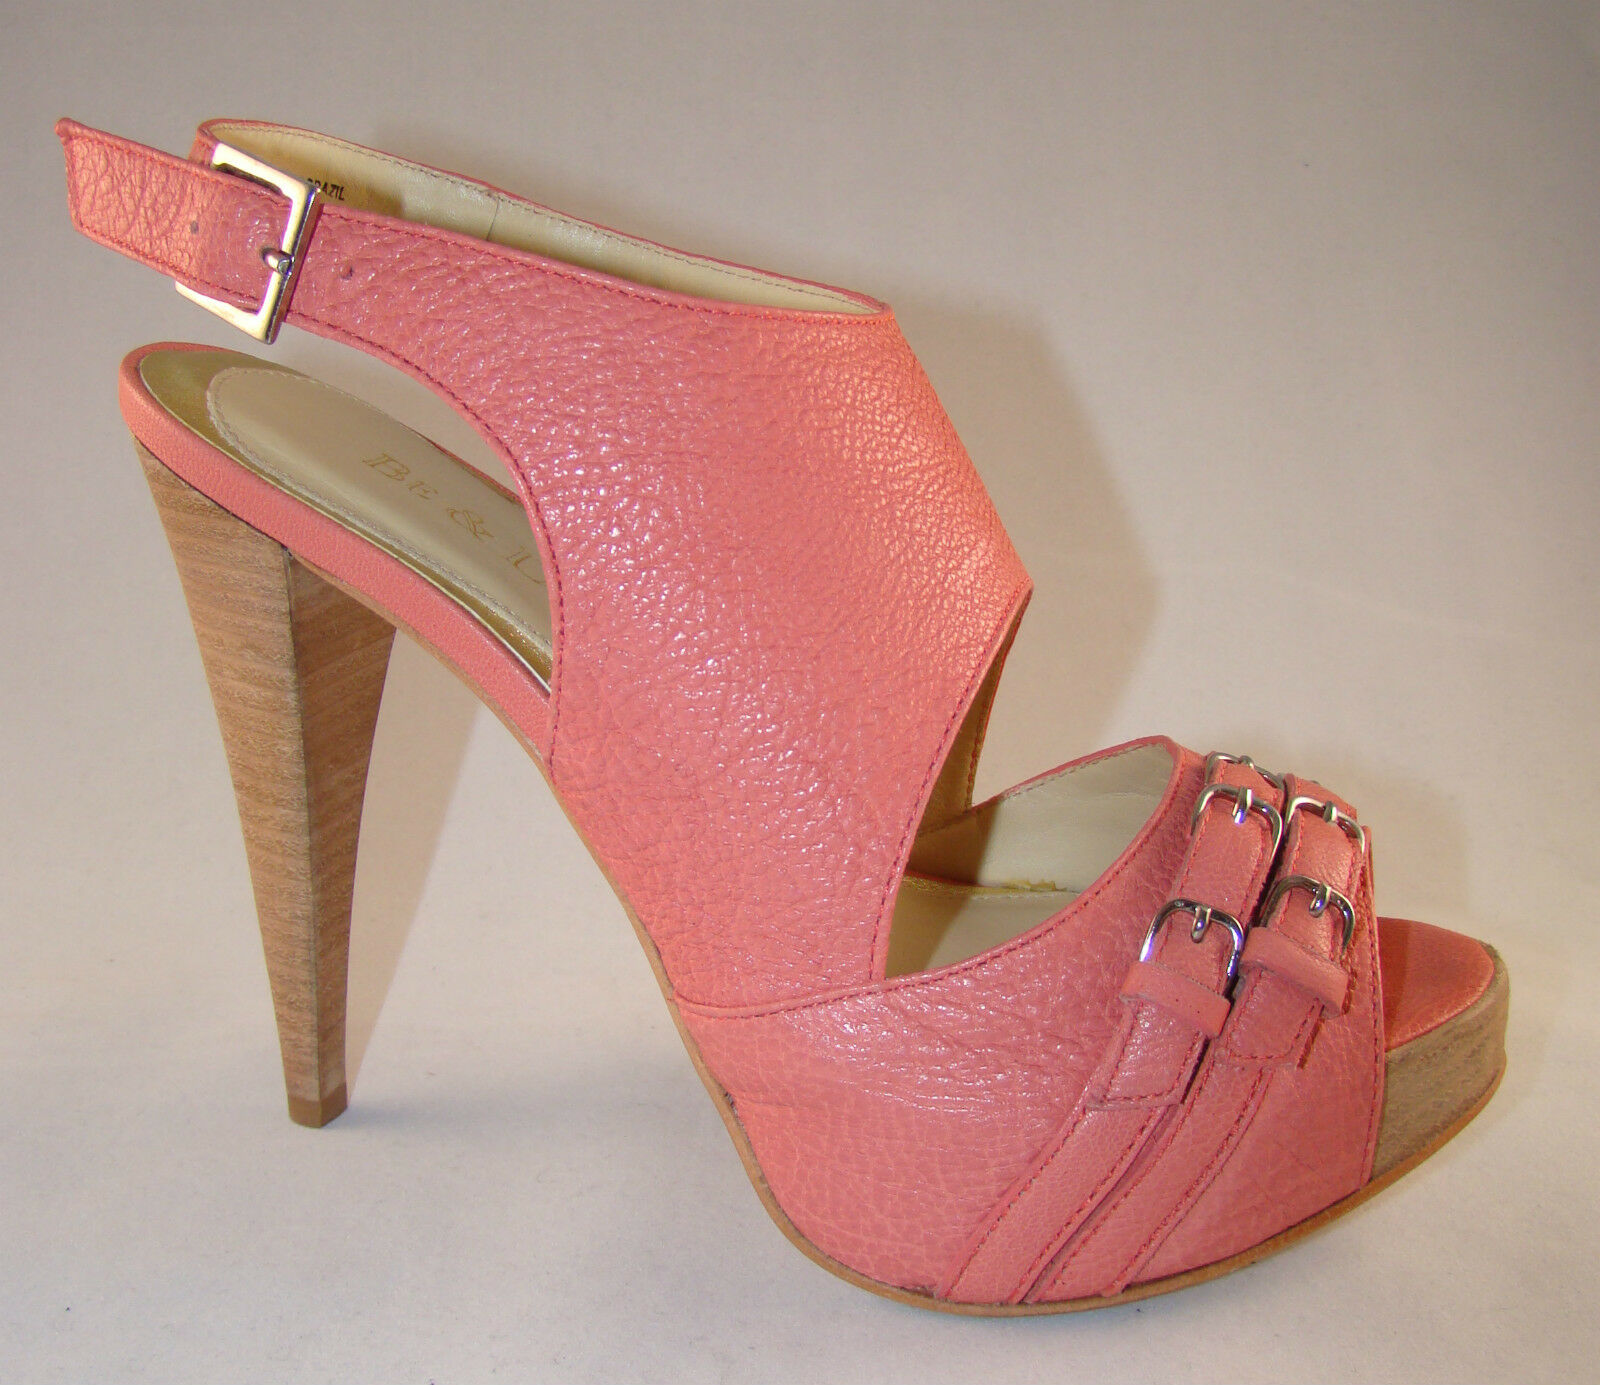 BE & D damen HEELS PUMPS schuhe NEW, IN BEAUTIFUL CORAL Farbe NEW, schuhe MADE IN BRAZIL f26bf7